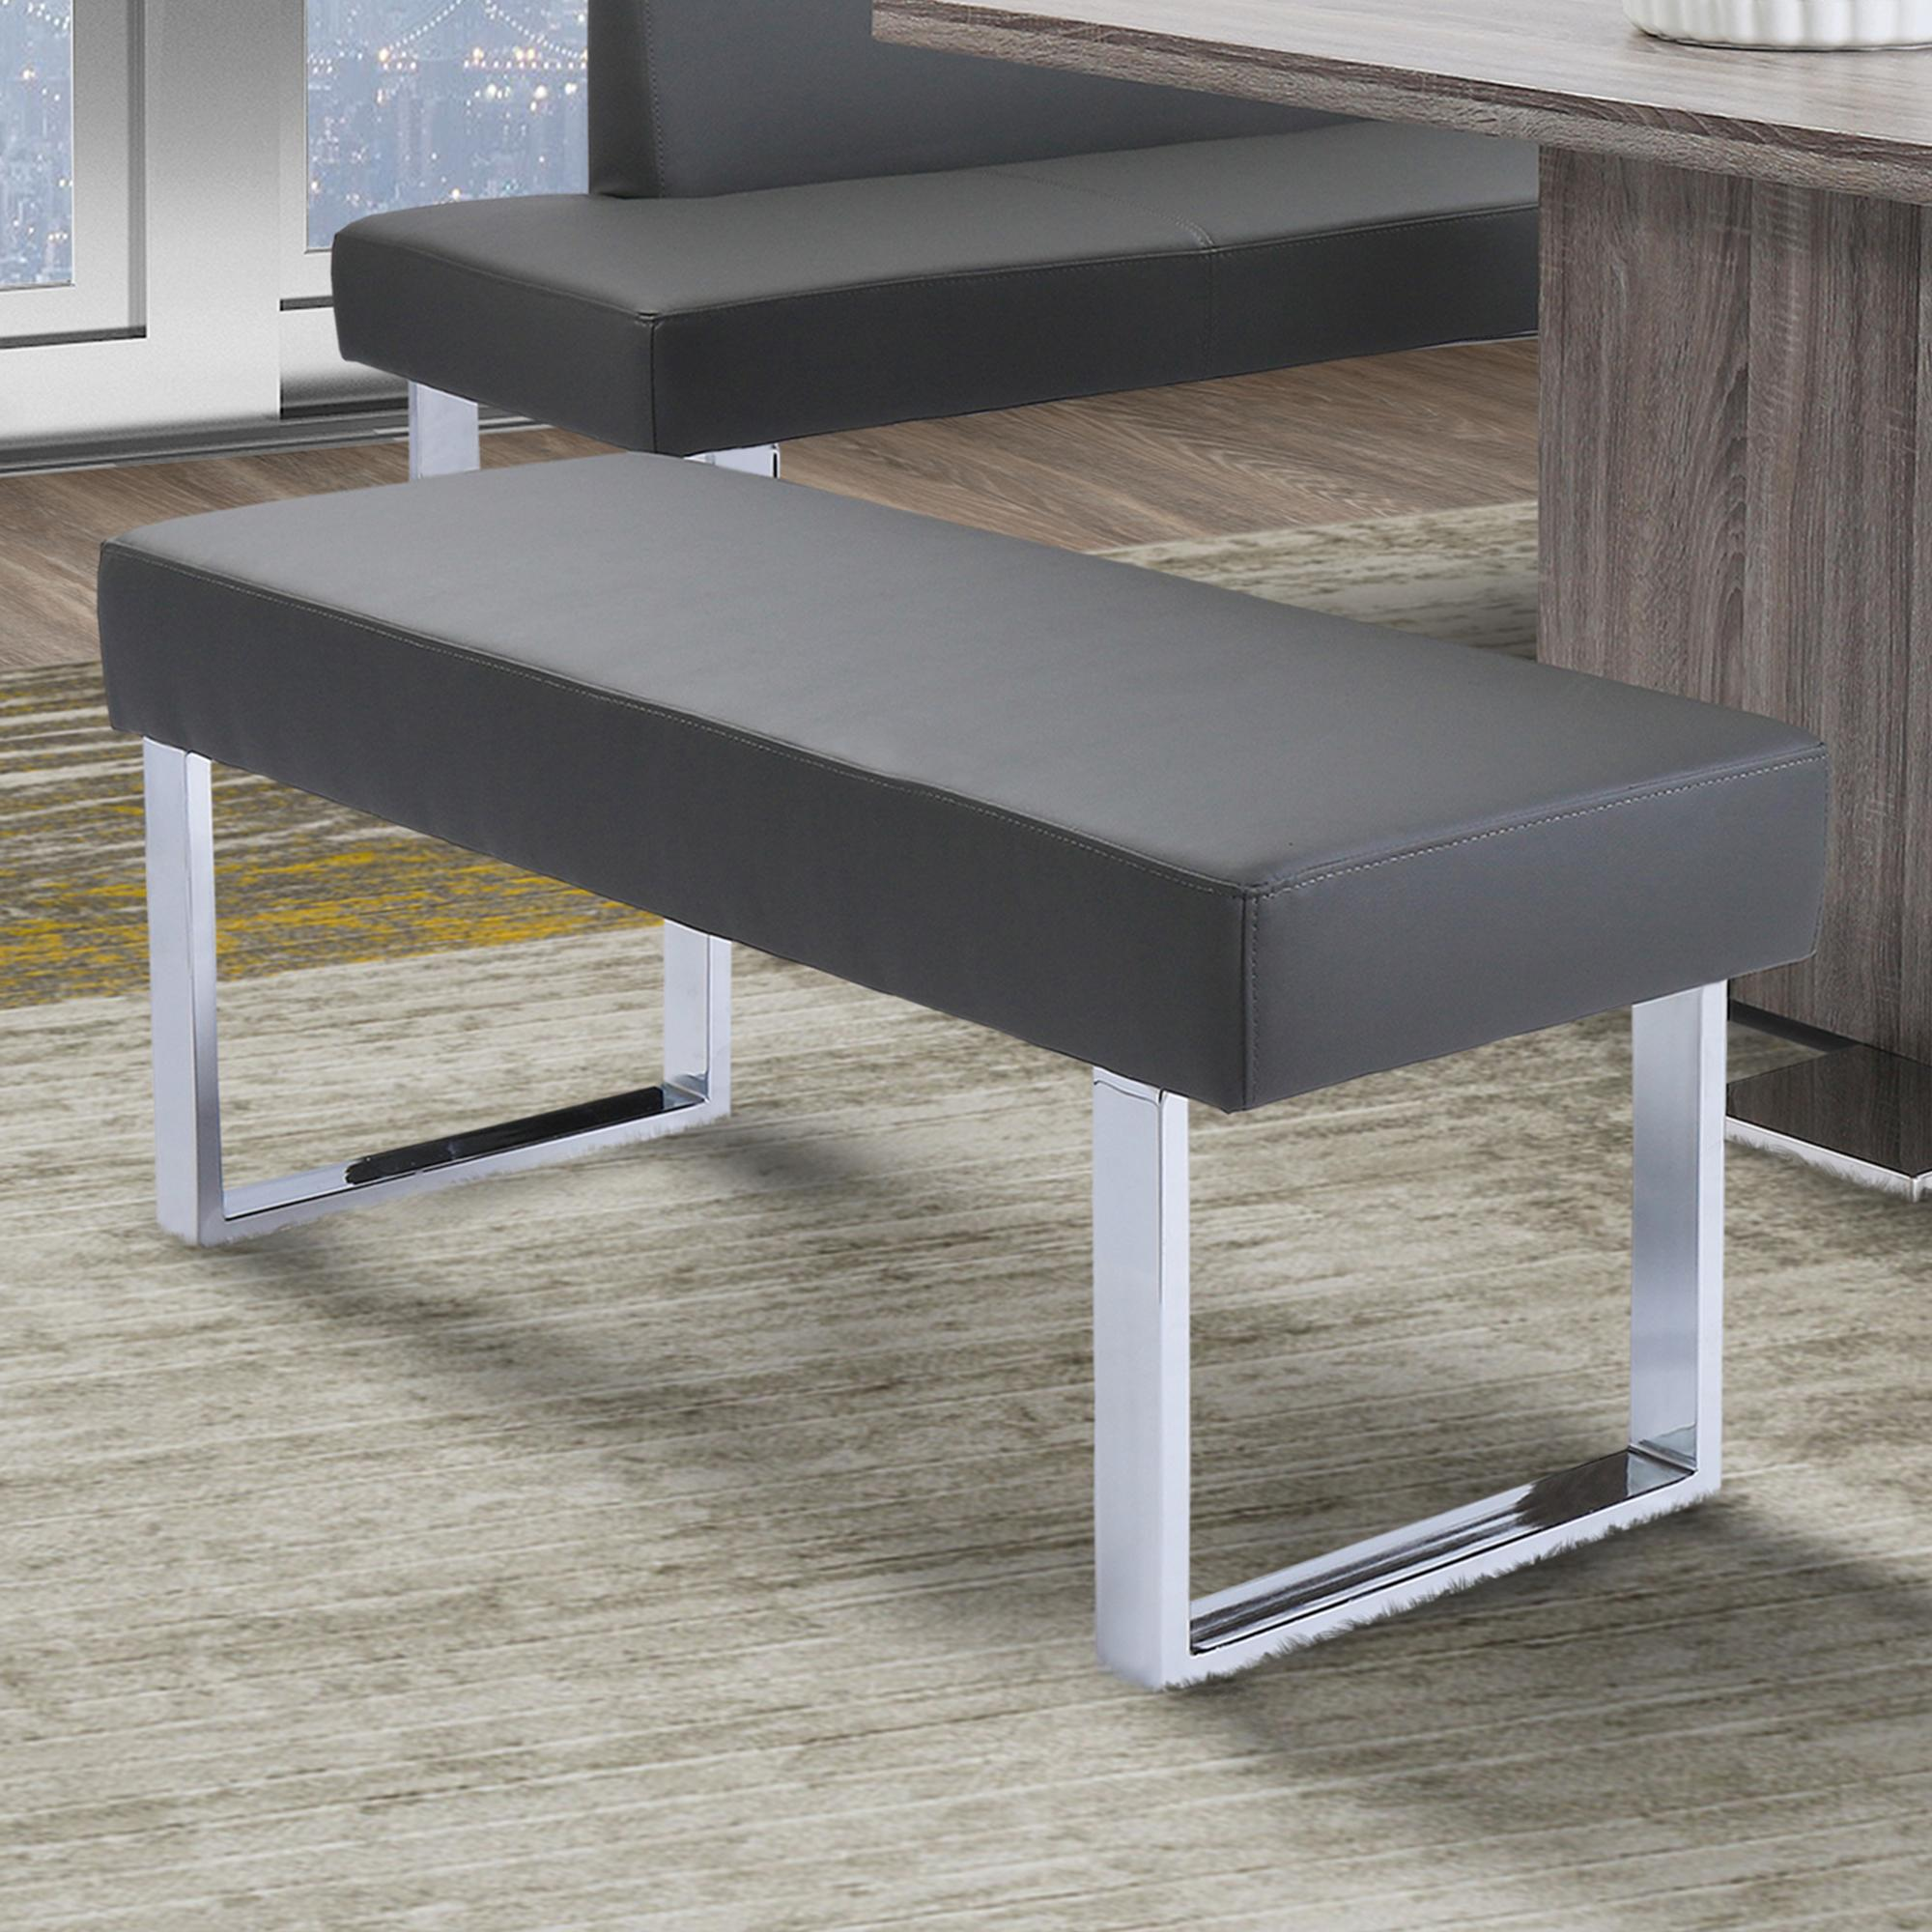 Armen Living Amanda Contemporary Dining Bench in Gray Faux Leather and Chrome Finish